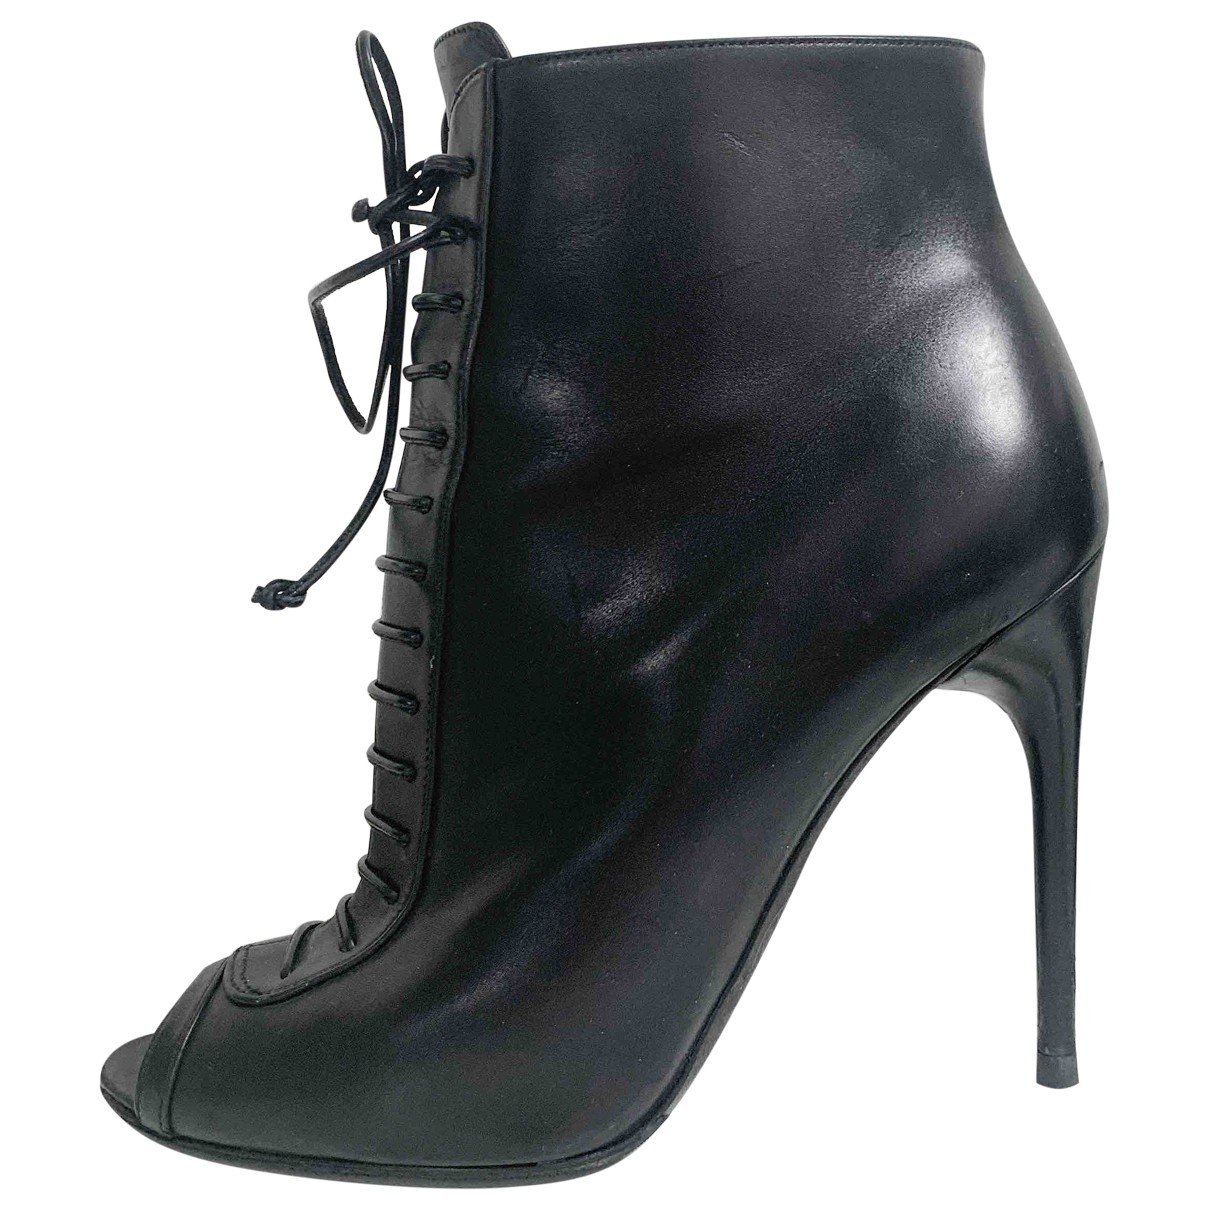 Tom Ford \N Black Leather Ankle boots for Women 38 EU